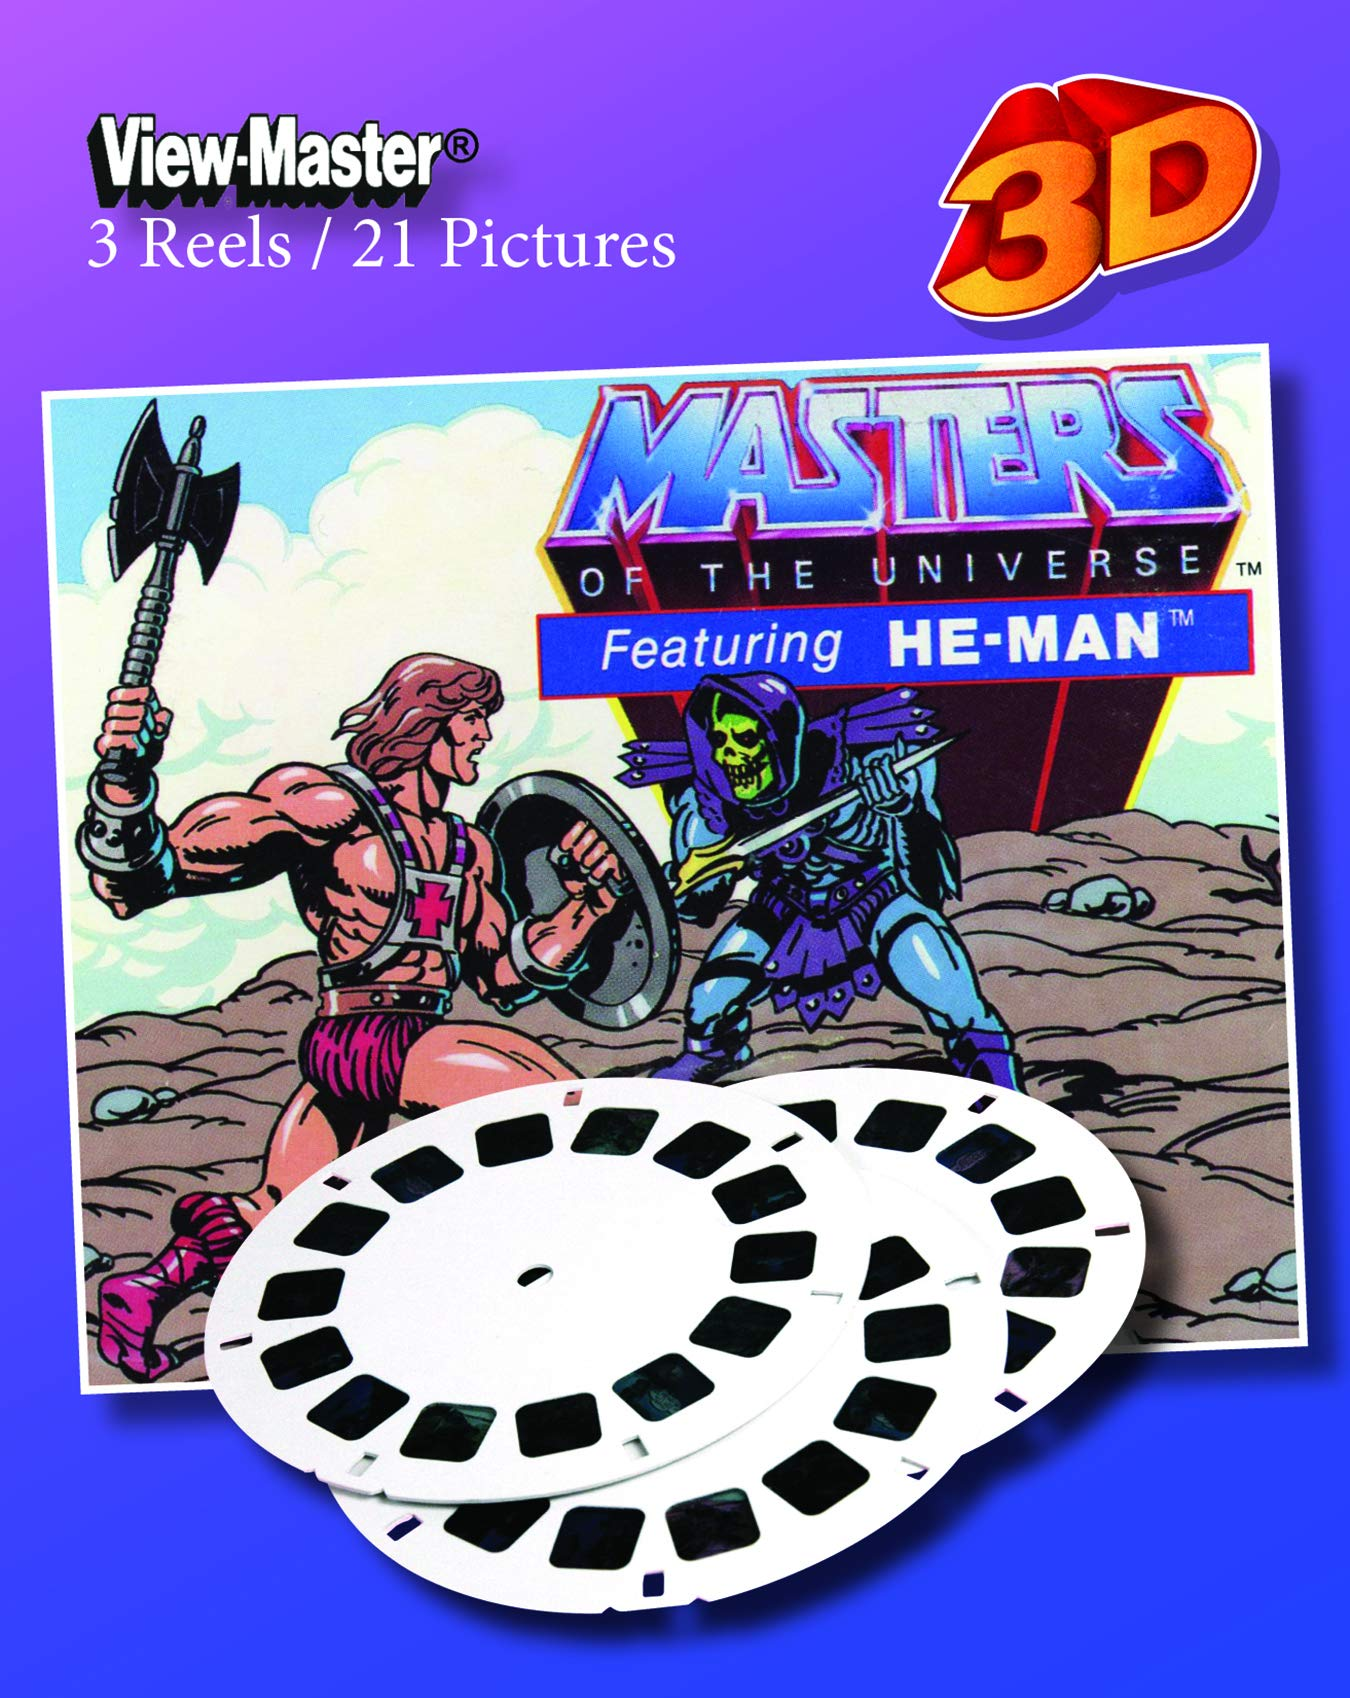 3Dstereo ViewMaster Masters of The Universe No. 2 - Featuring HE-Man - ViewMaster 3 Reel Set by 3Dstereo ViewMaster